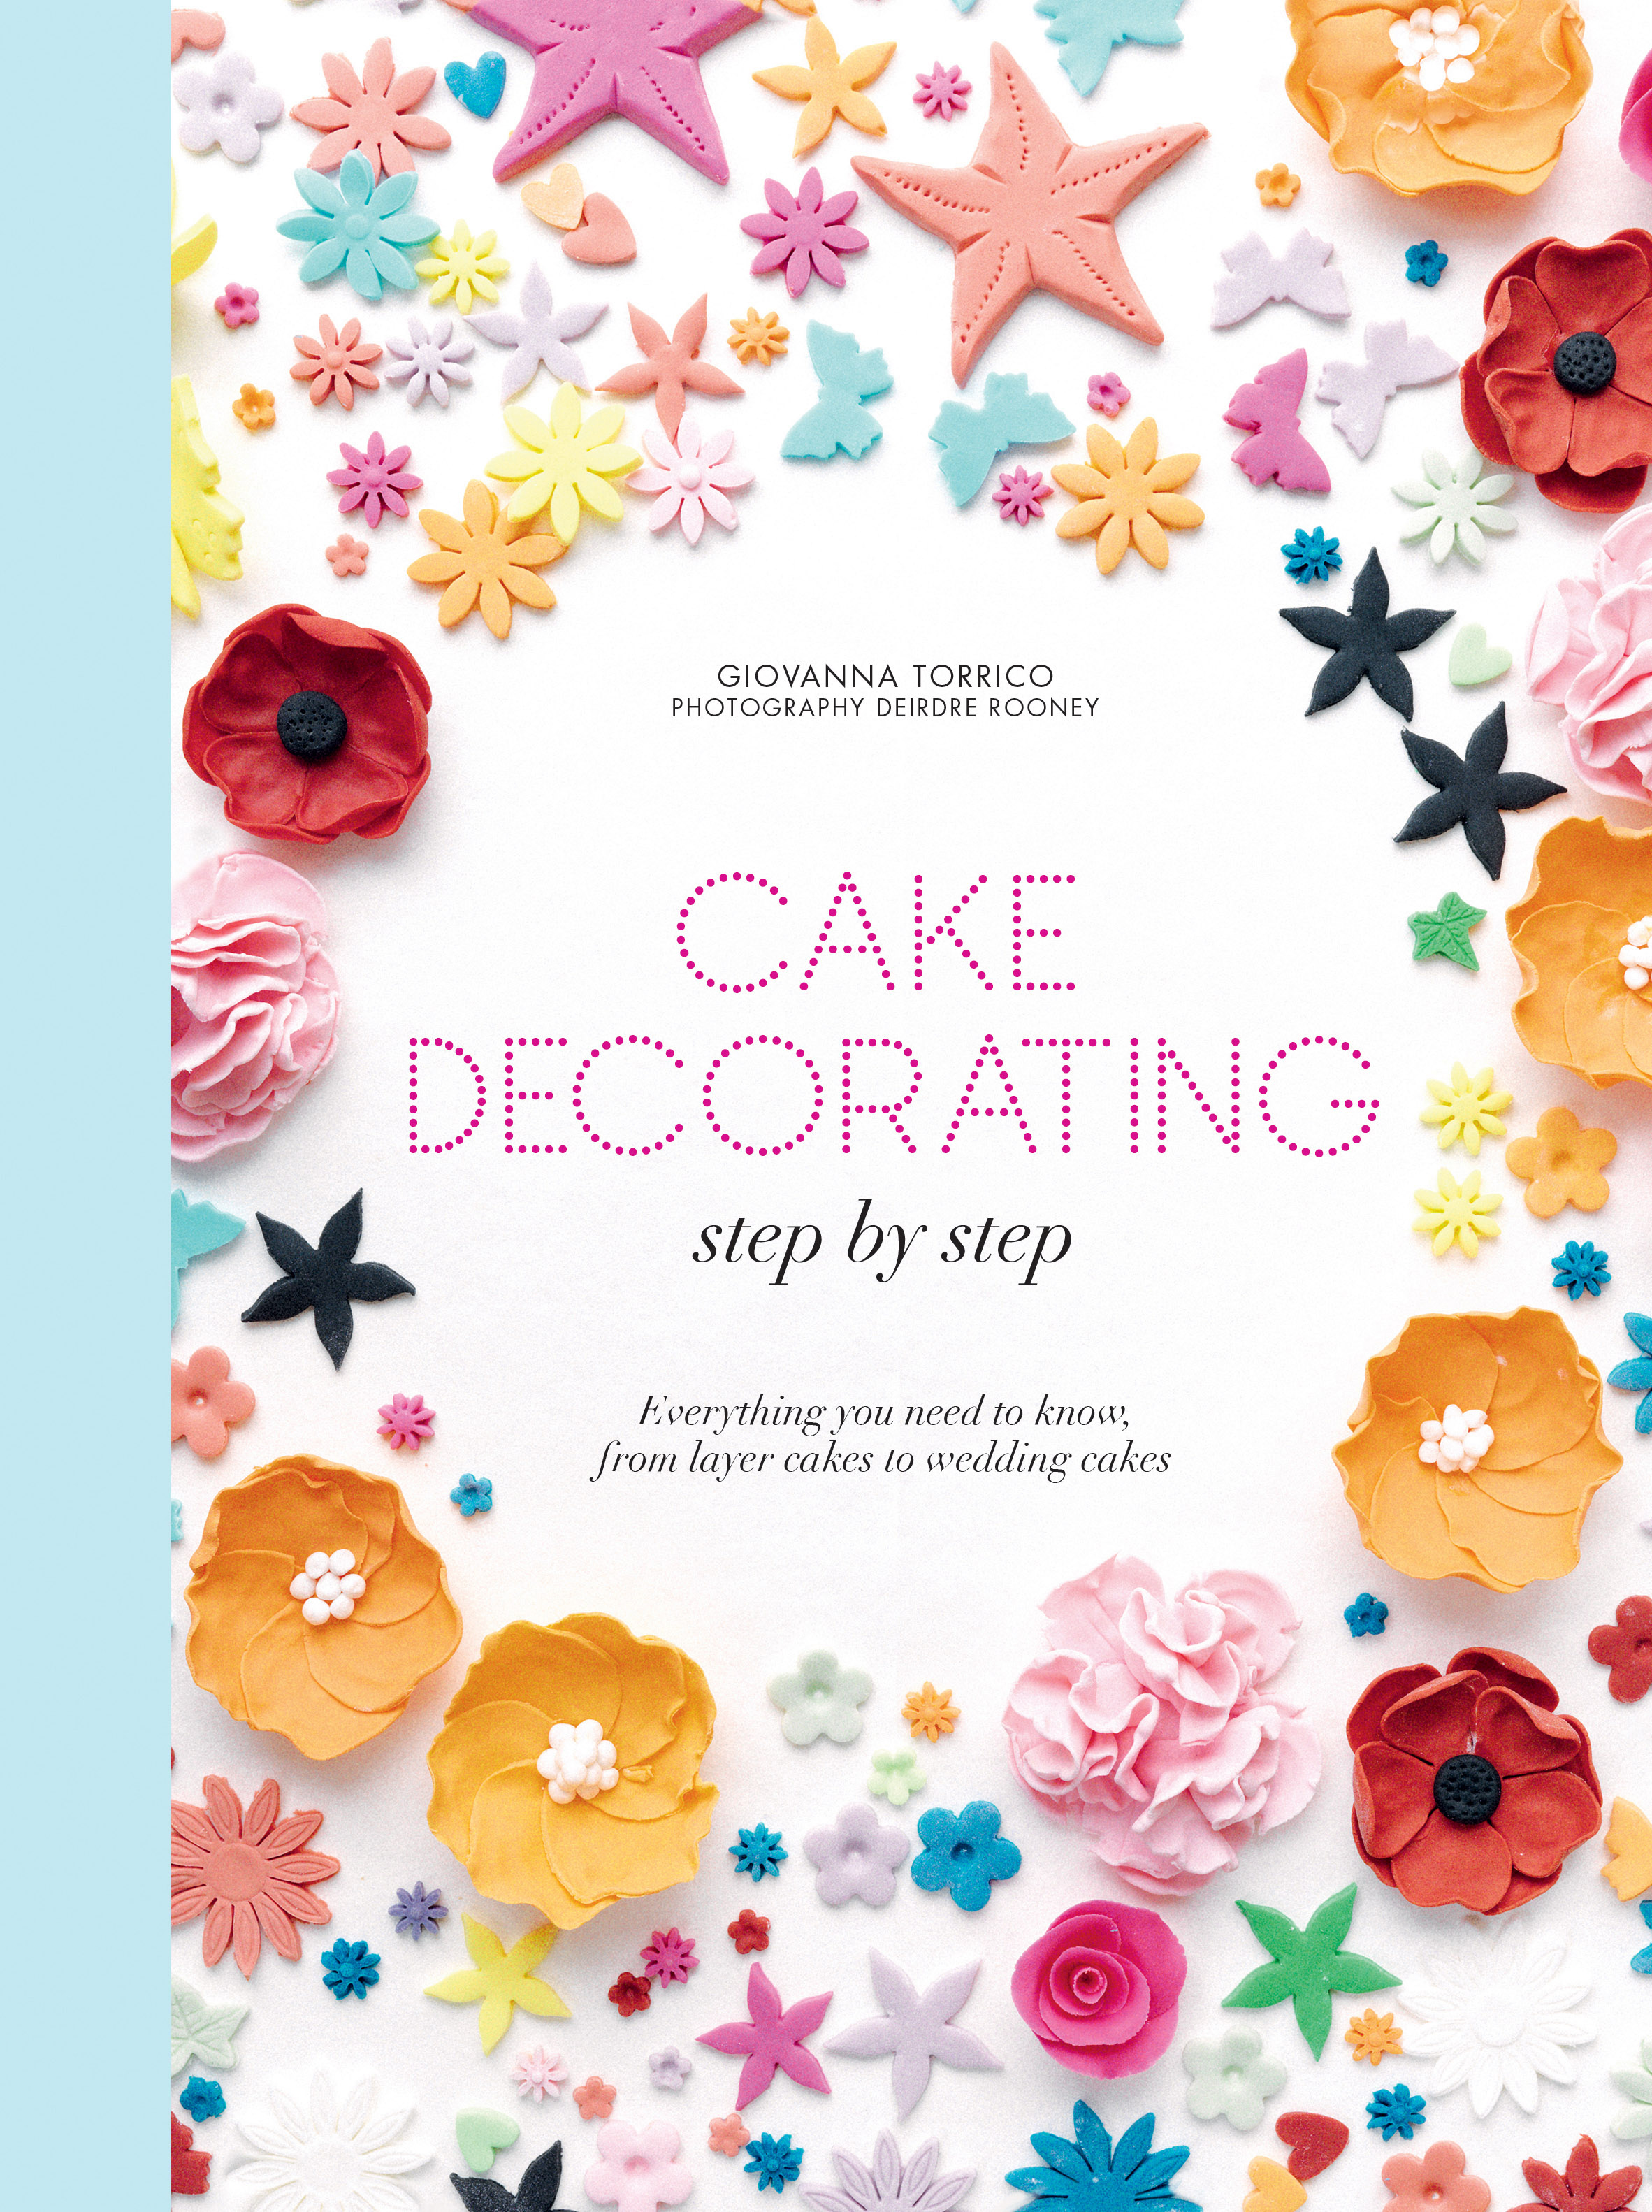 Cake Decorating Books New Zealand : Cake decorating step by step - Giovanna Torrico ...